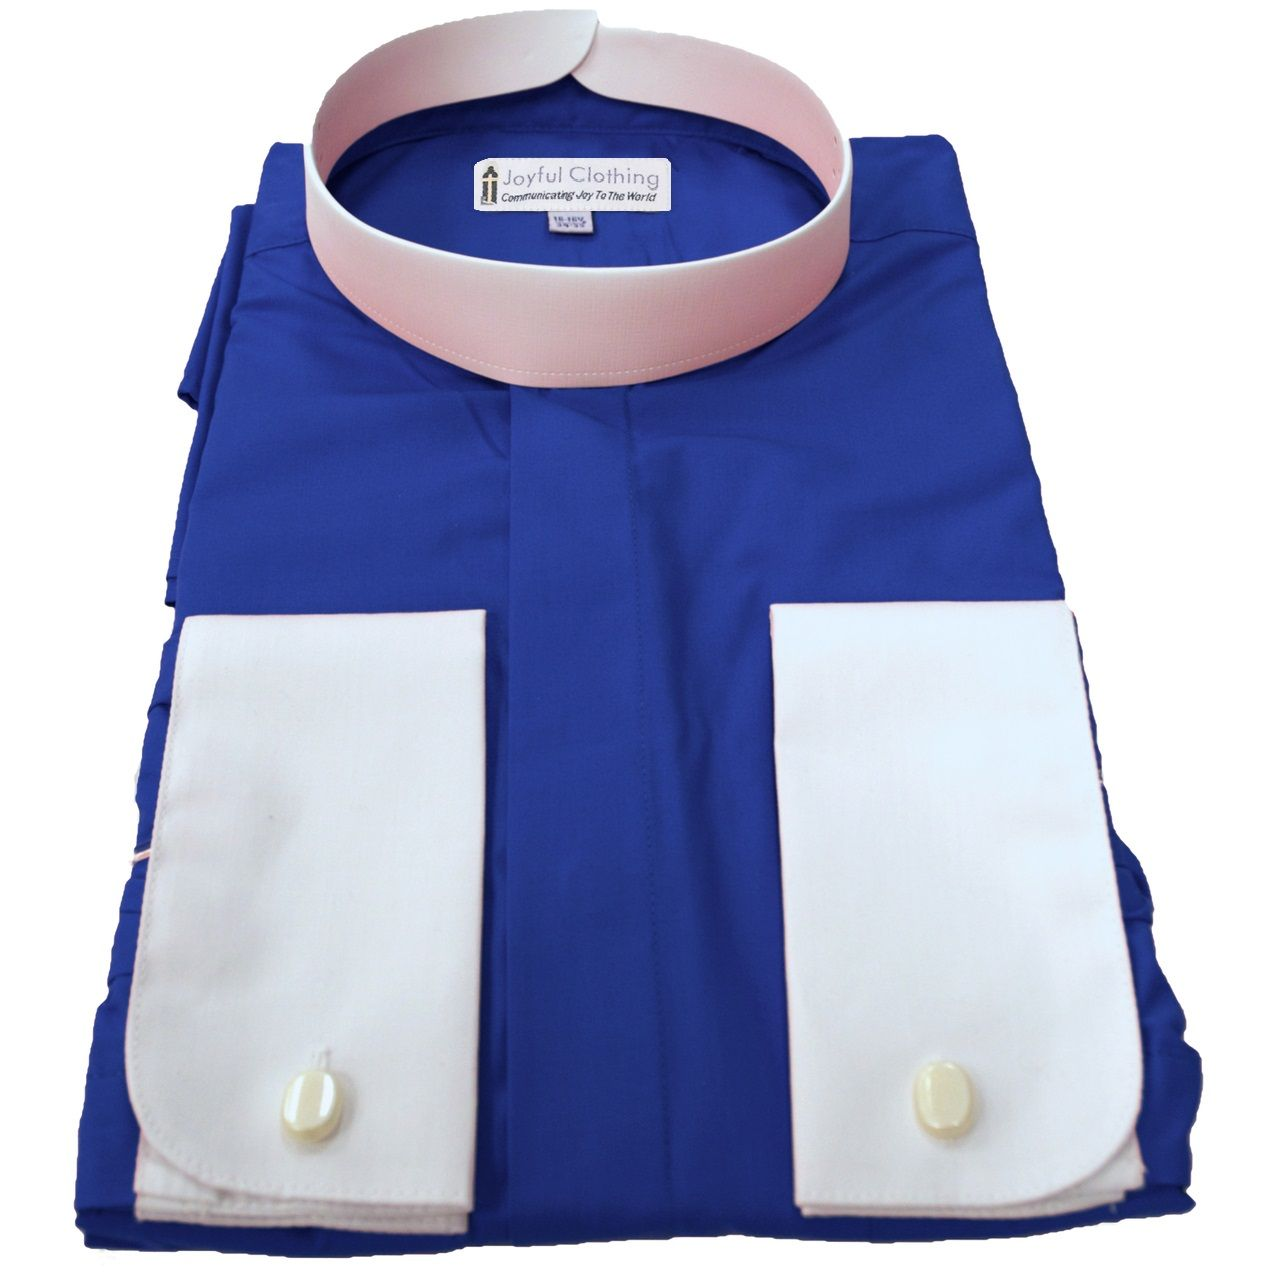 222. Men's Full-Collar Banded Clergy Shirt - Royal Blue with White Cuffs